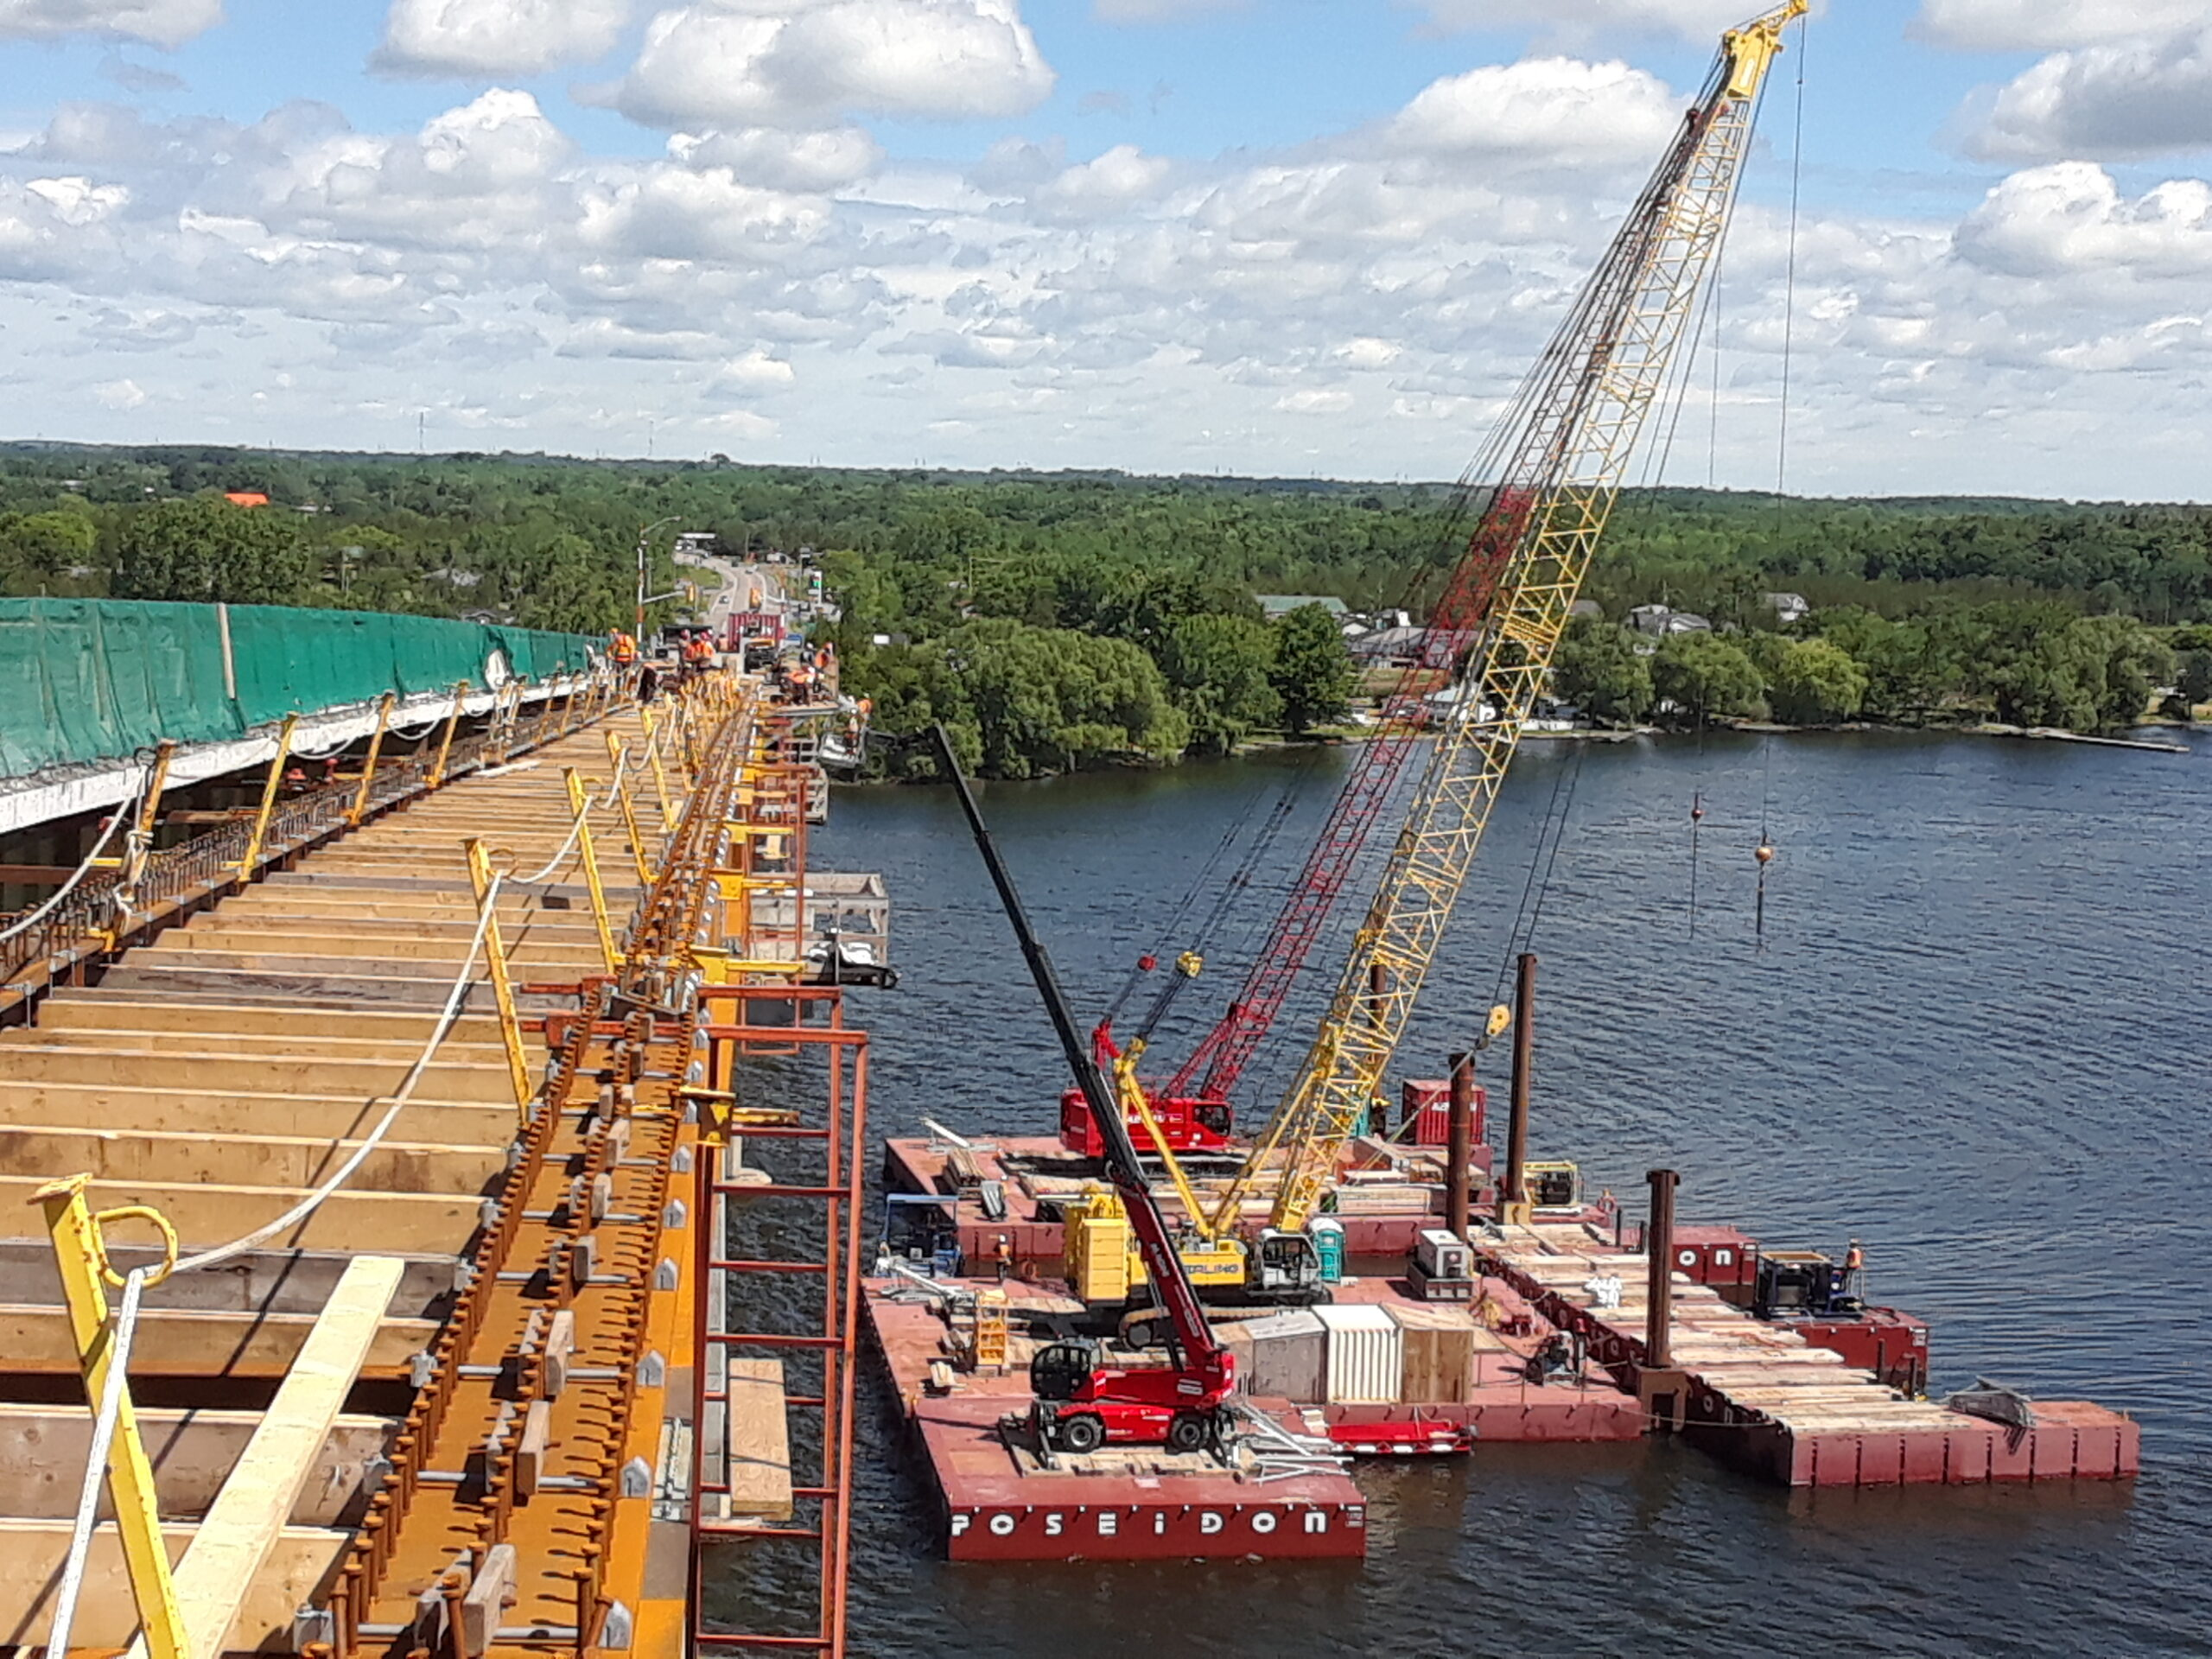 North overview of the new girder section and the barges